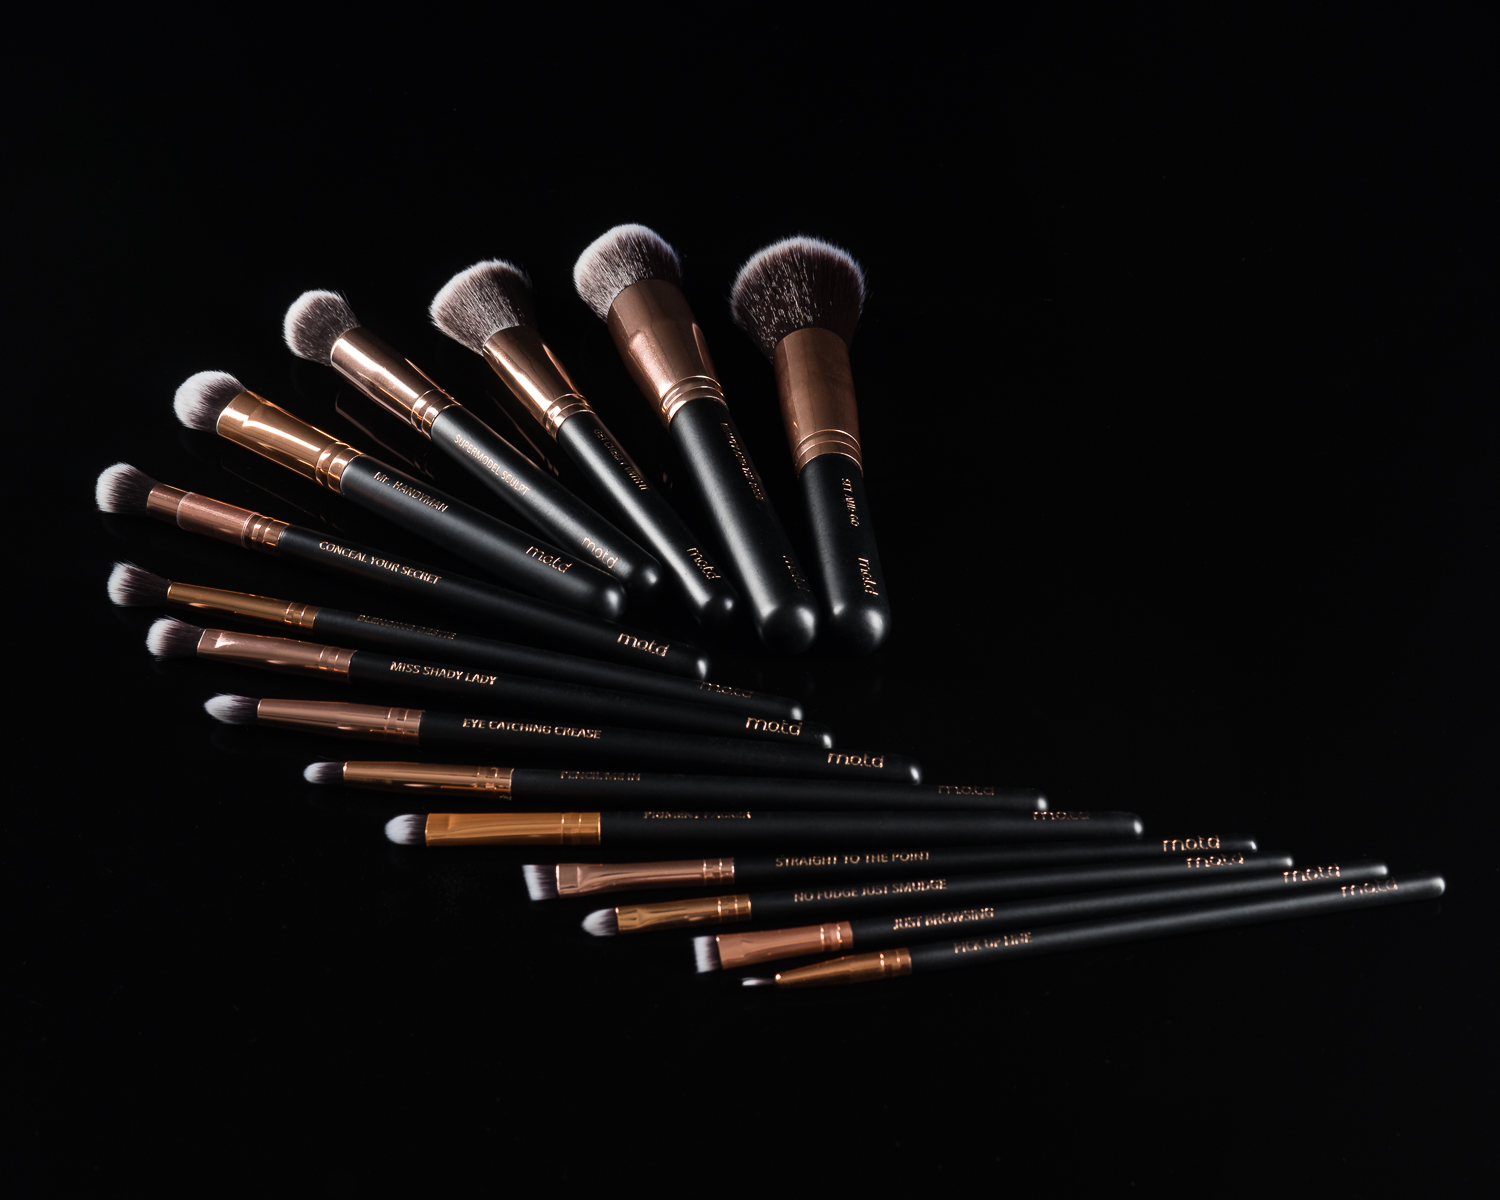 M.O.T.D. Lux Vegan Brush Kit on a black background